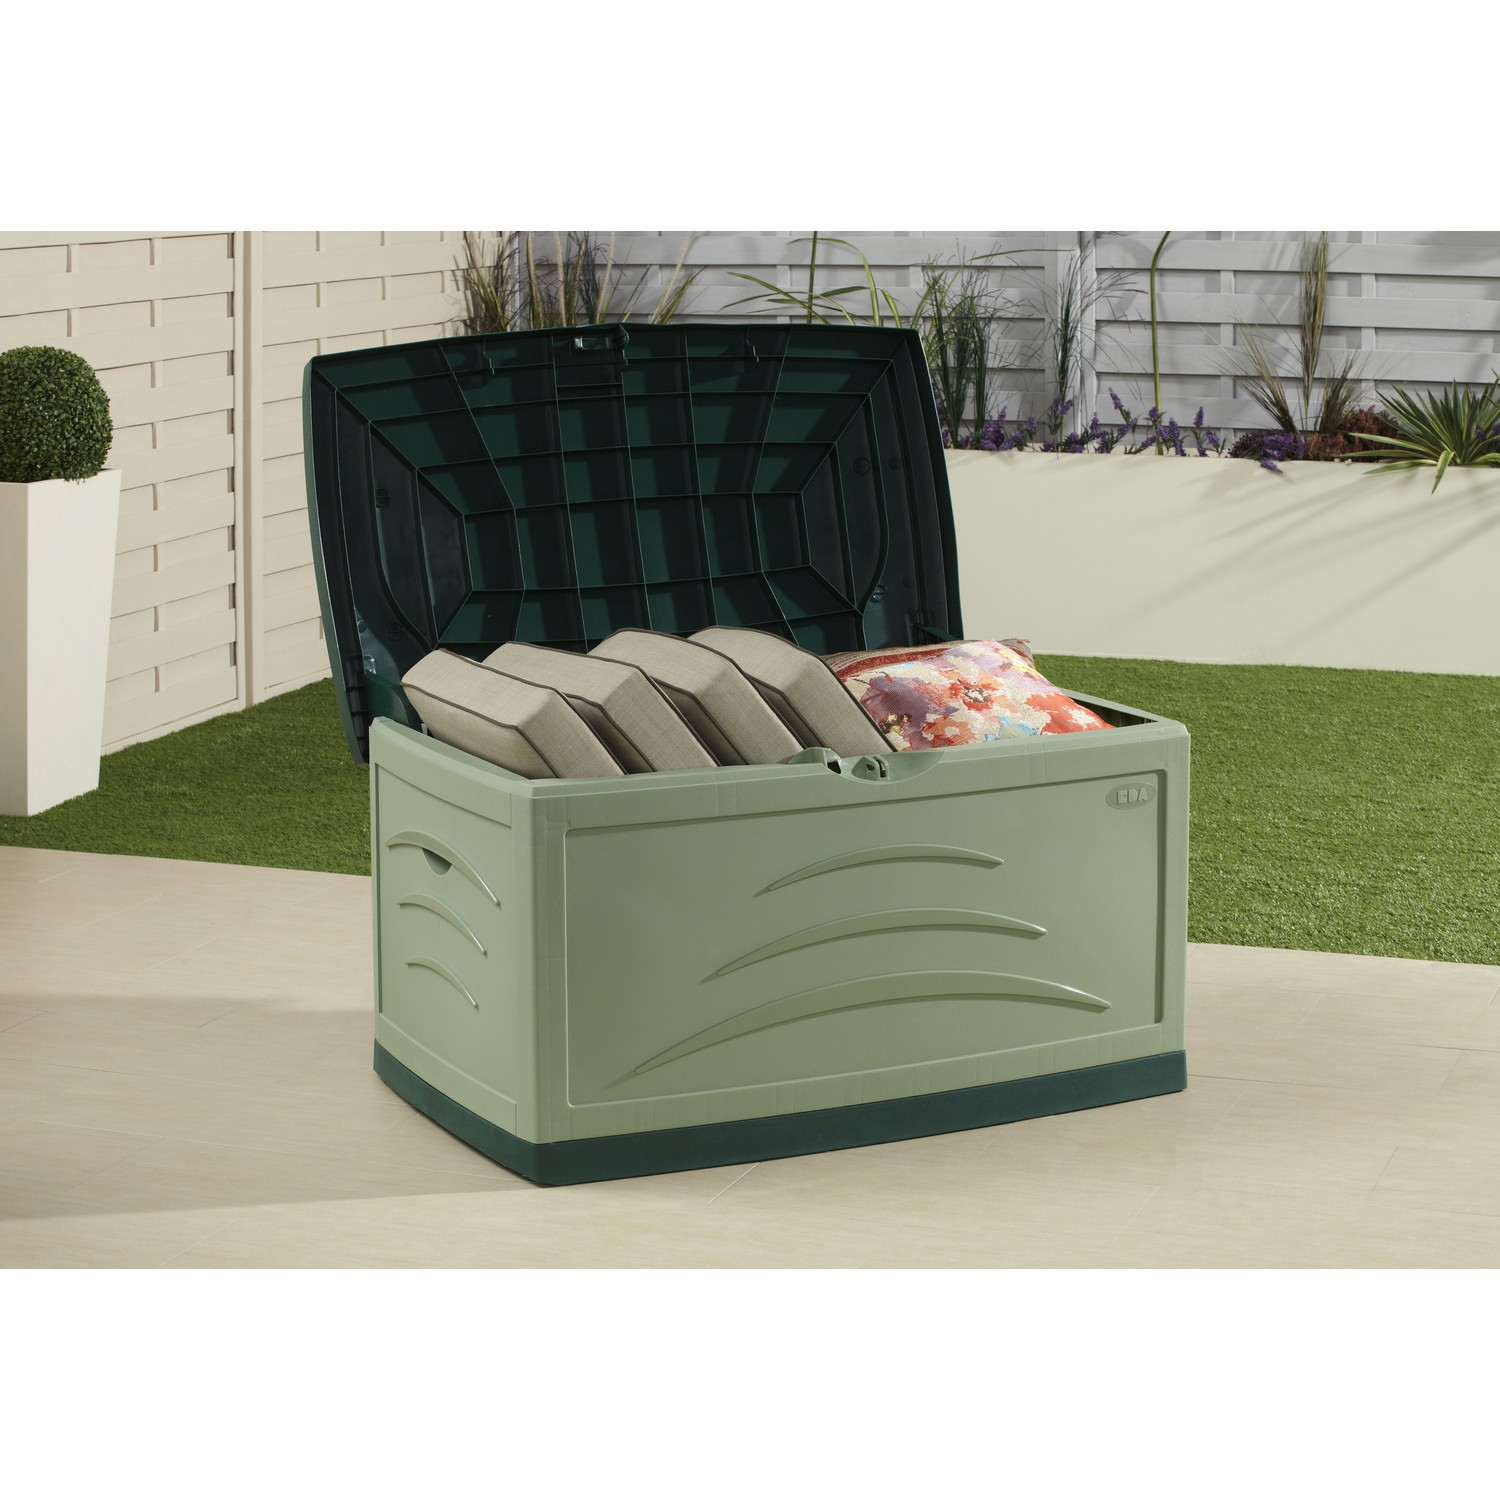 Image of: Green Patio Cushion Storage